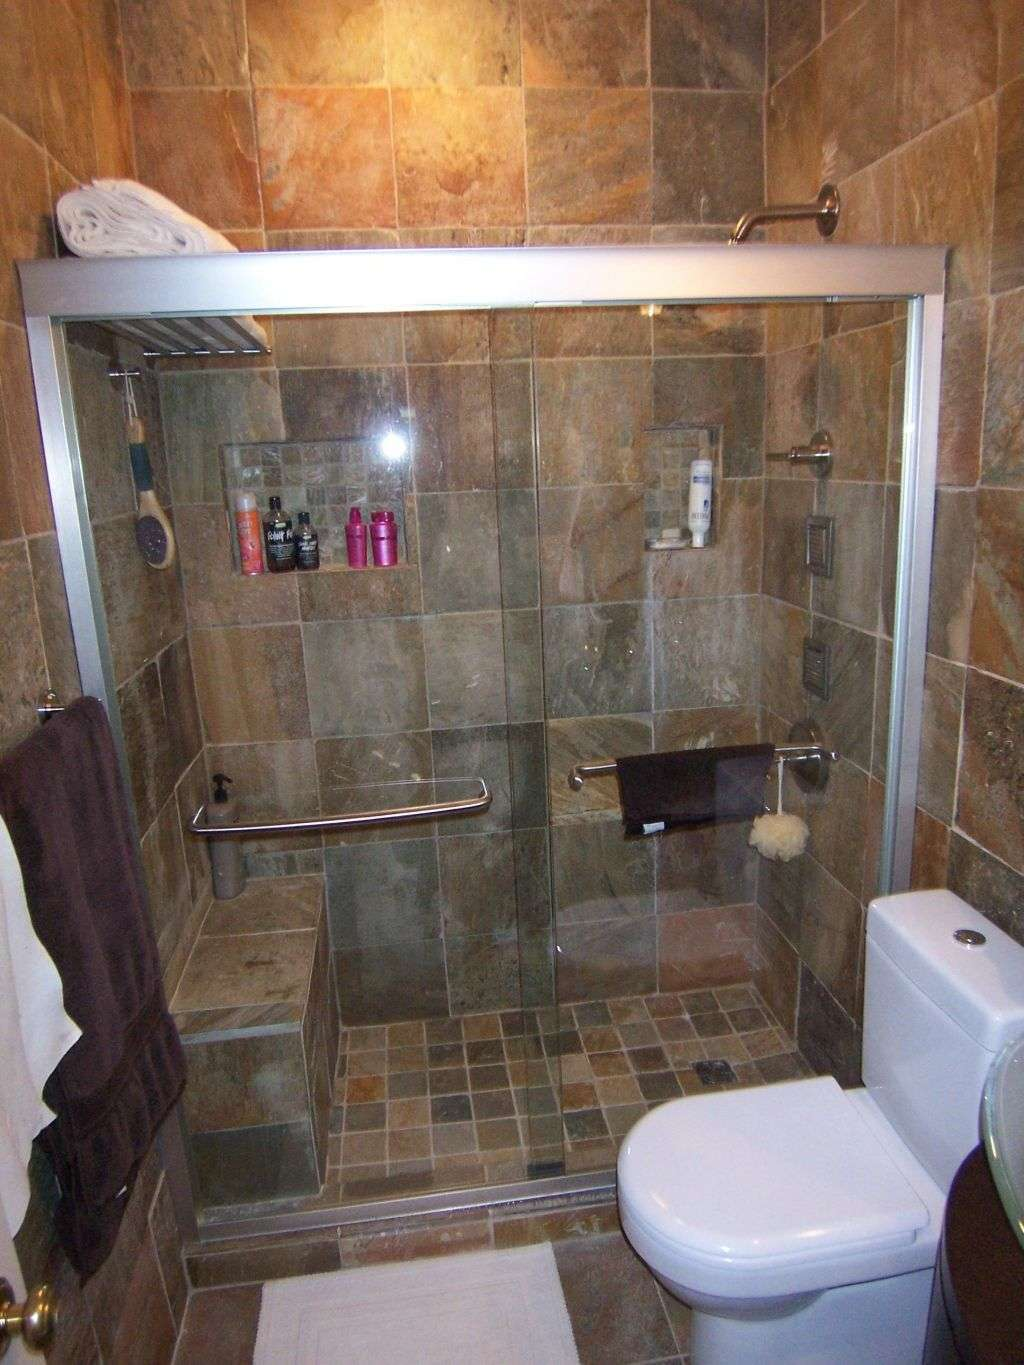 40 wonderful pictures and ideas of 1920s bathroom tile designs for Bathroom tile ideas